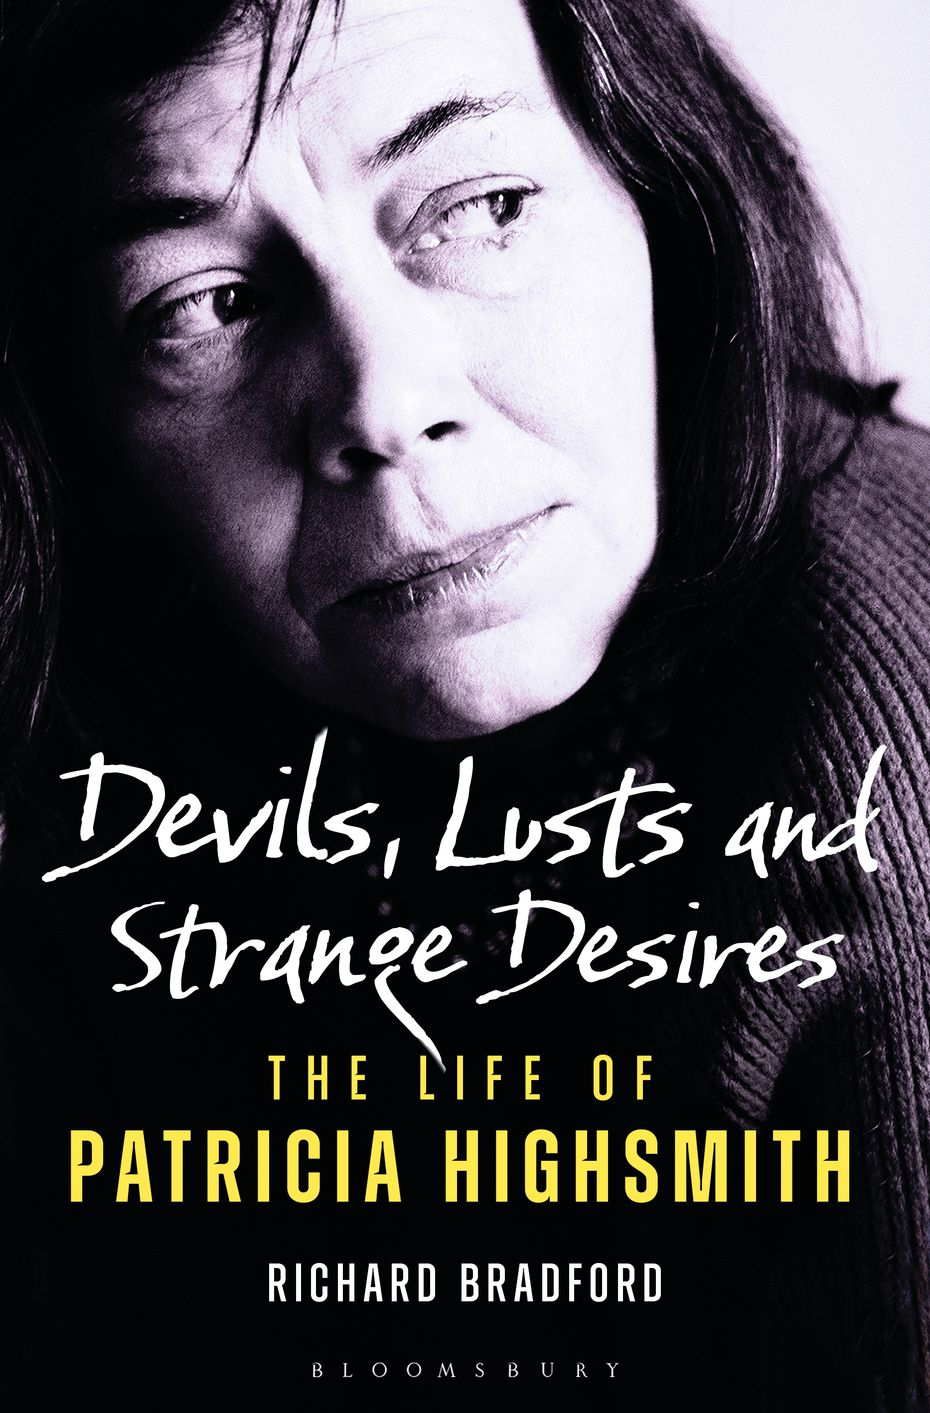 'Devils, Lusts and Strange Desires: The Life of Patricia Highsmith,' by Richard Bradford. Born in Fort Worth in 1921, Patricia Highsmith is best known for 'Strangers on a Train,' 'The Price of Salt,' later republished as 'Carol,' and 'The Talented Mr. Ripley.'